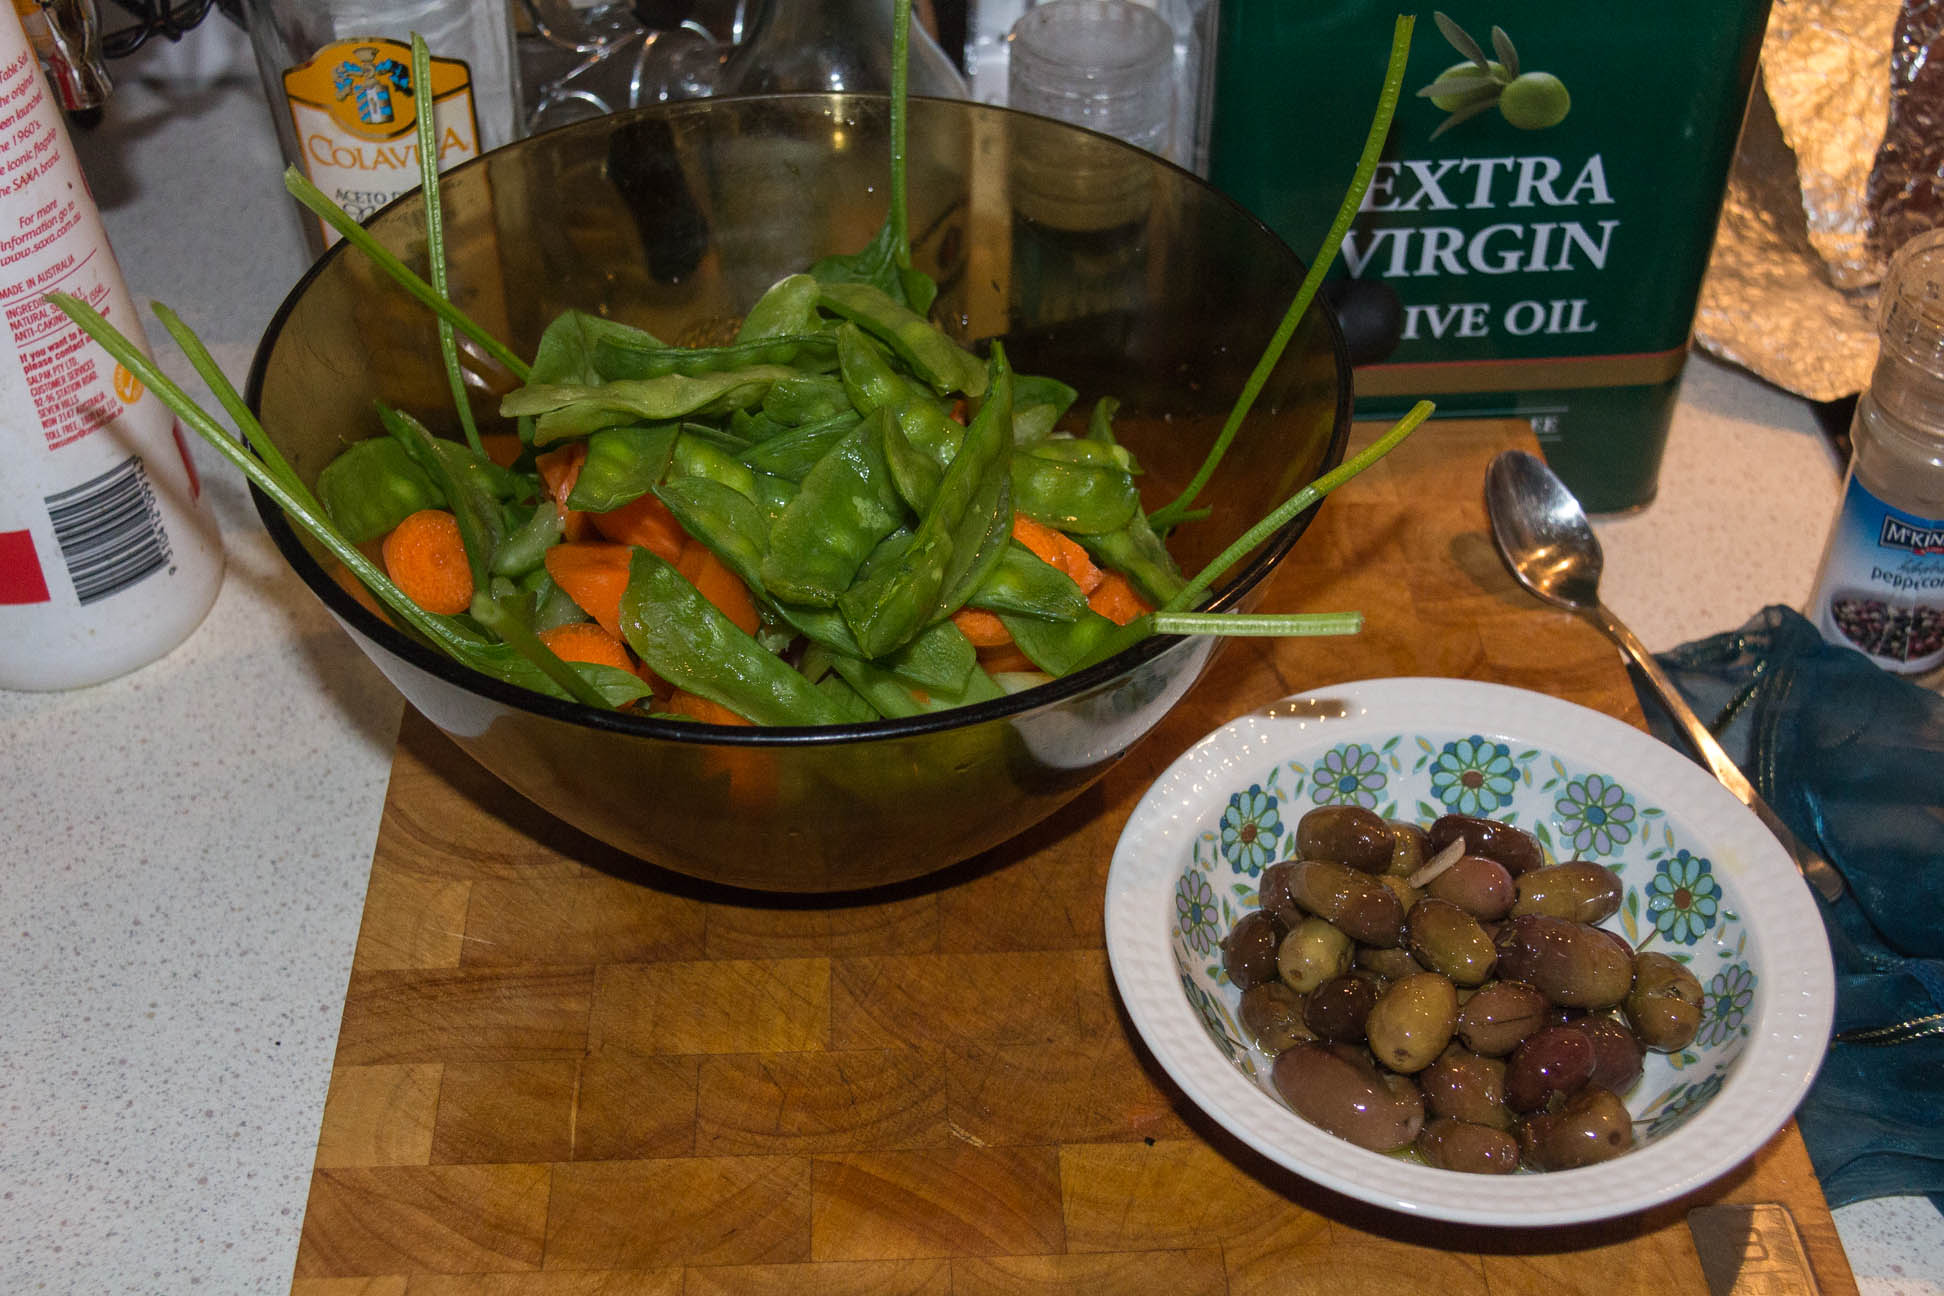 The Salad made with spinach, carrots, celery, tomatoes and peas. For now.. only the spinach is store-bought re-grown. Also the olives is from our tree out back and another success story of my preserving the olives :D SOO HAPPY!